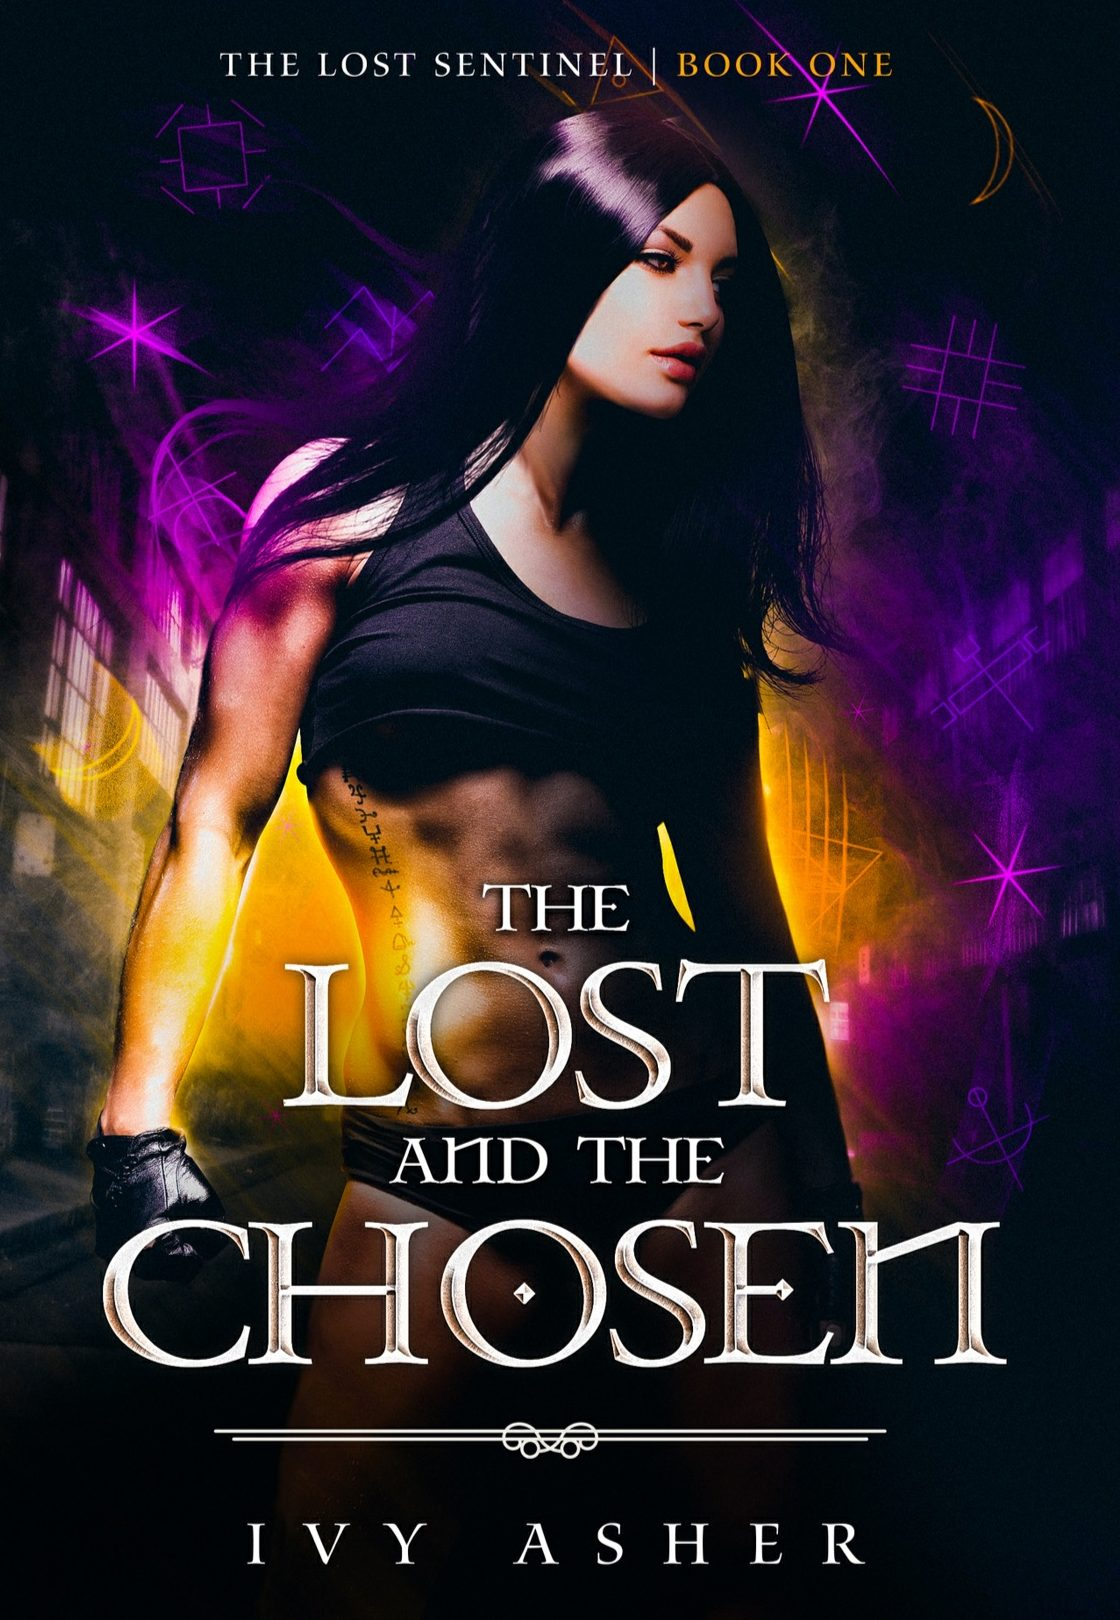 The Lost and The Chosen by Ivy Asher - A Book Review #SlowBurn #RH #UF #MustRead #Book1 #WhyChoose